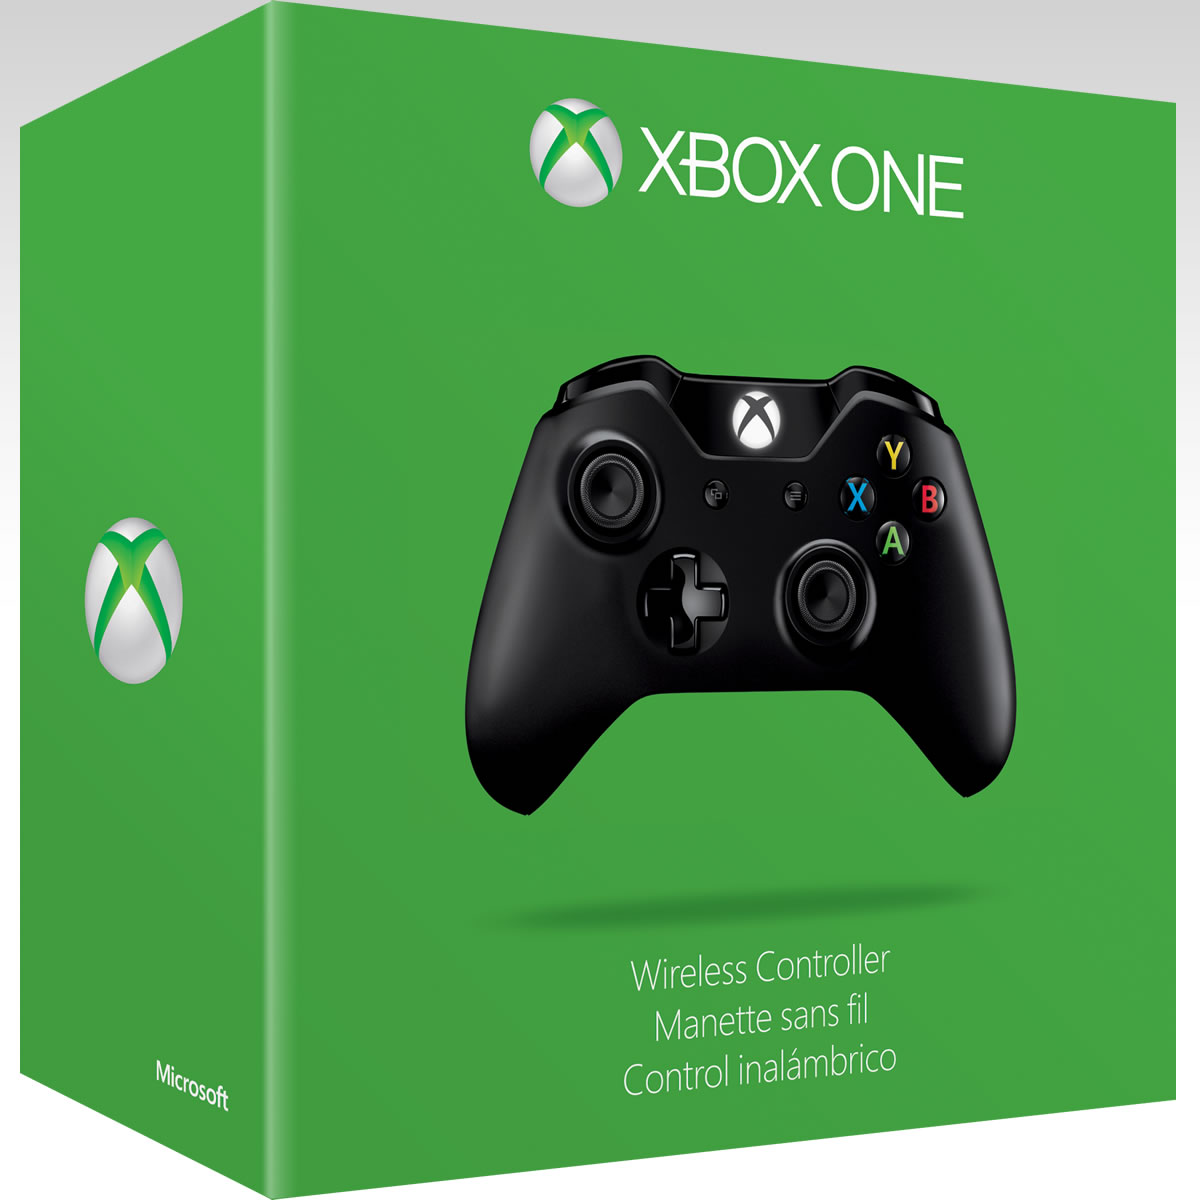 MICROSOFT OFFICIAL XBOX ONE WIRELESS CONTROLLER Black - MICROSOFT ������� XBOX ONE �������� ����������� ����� (XBOX ONE)